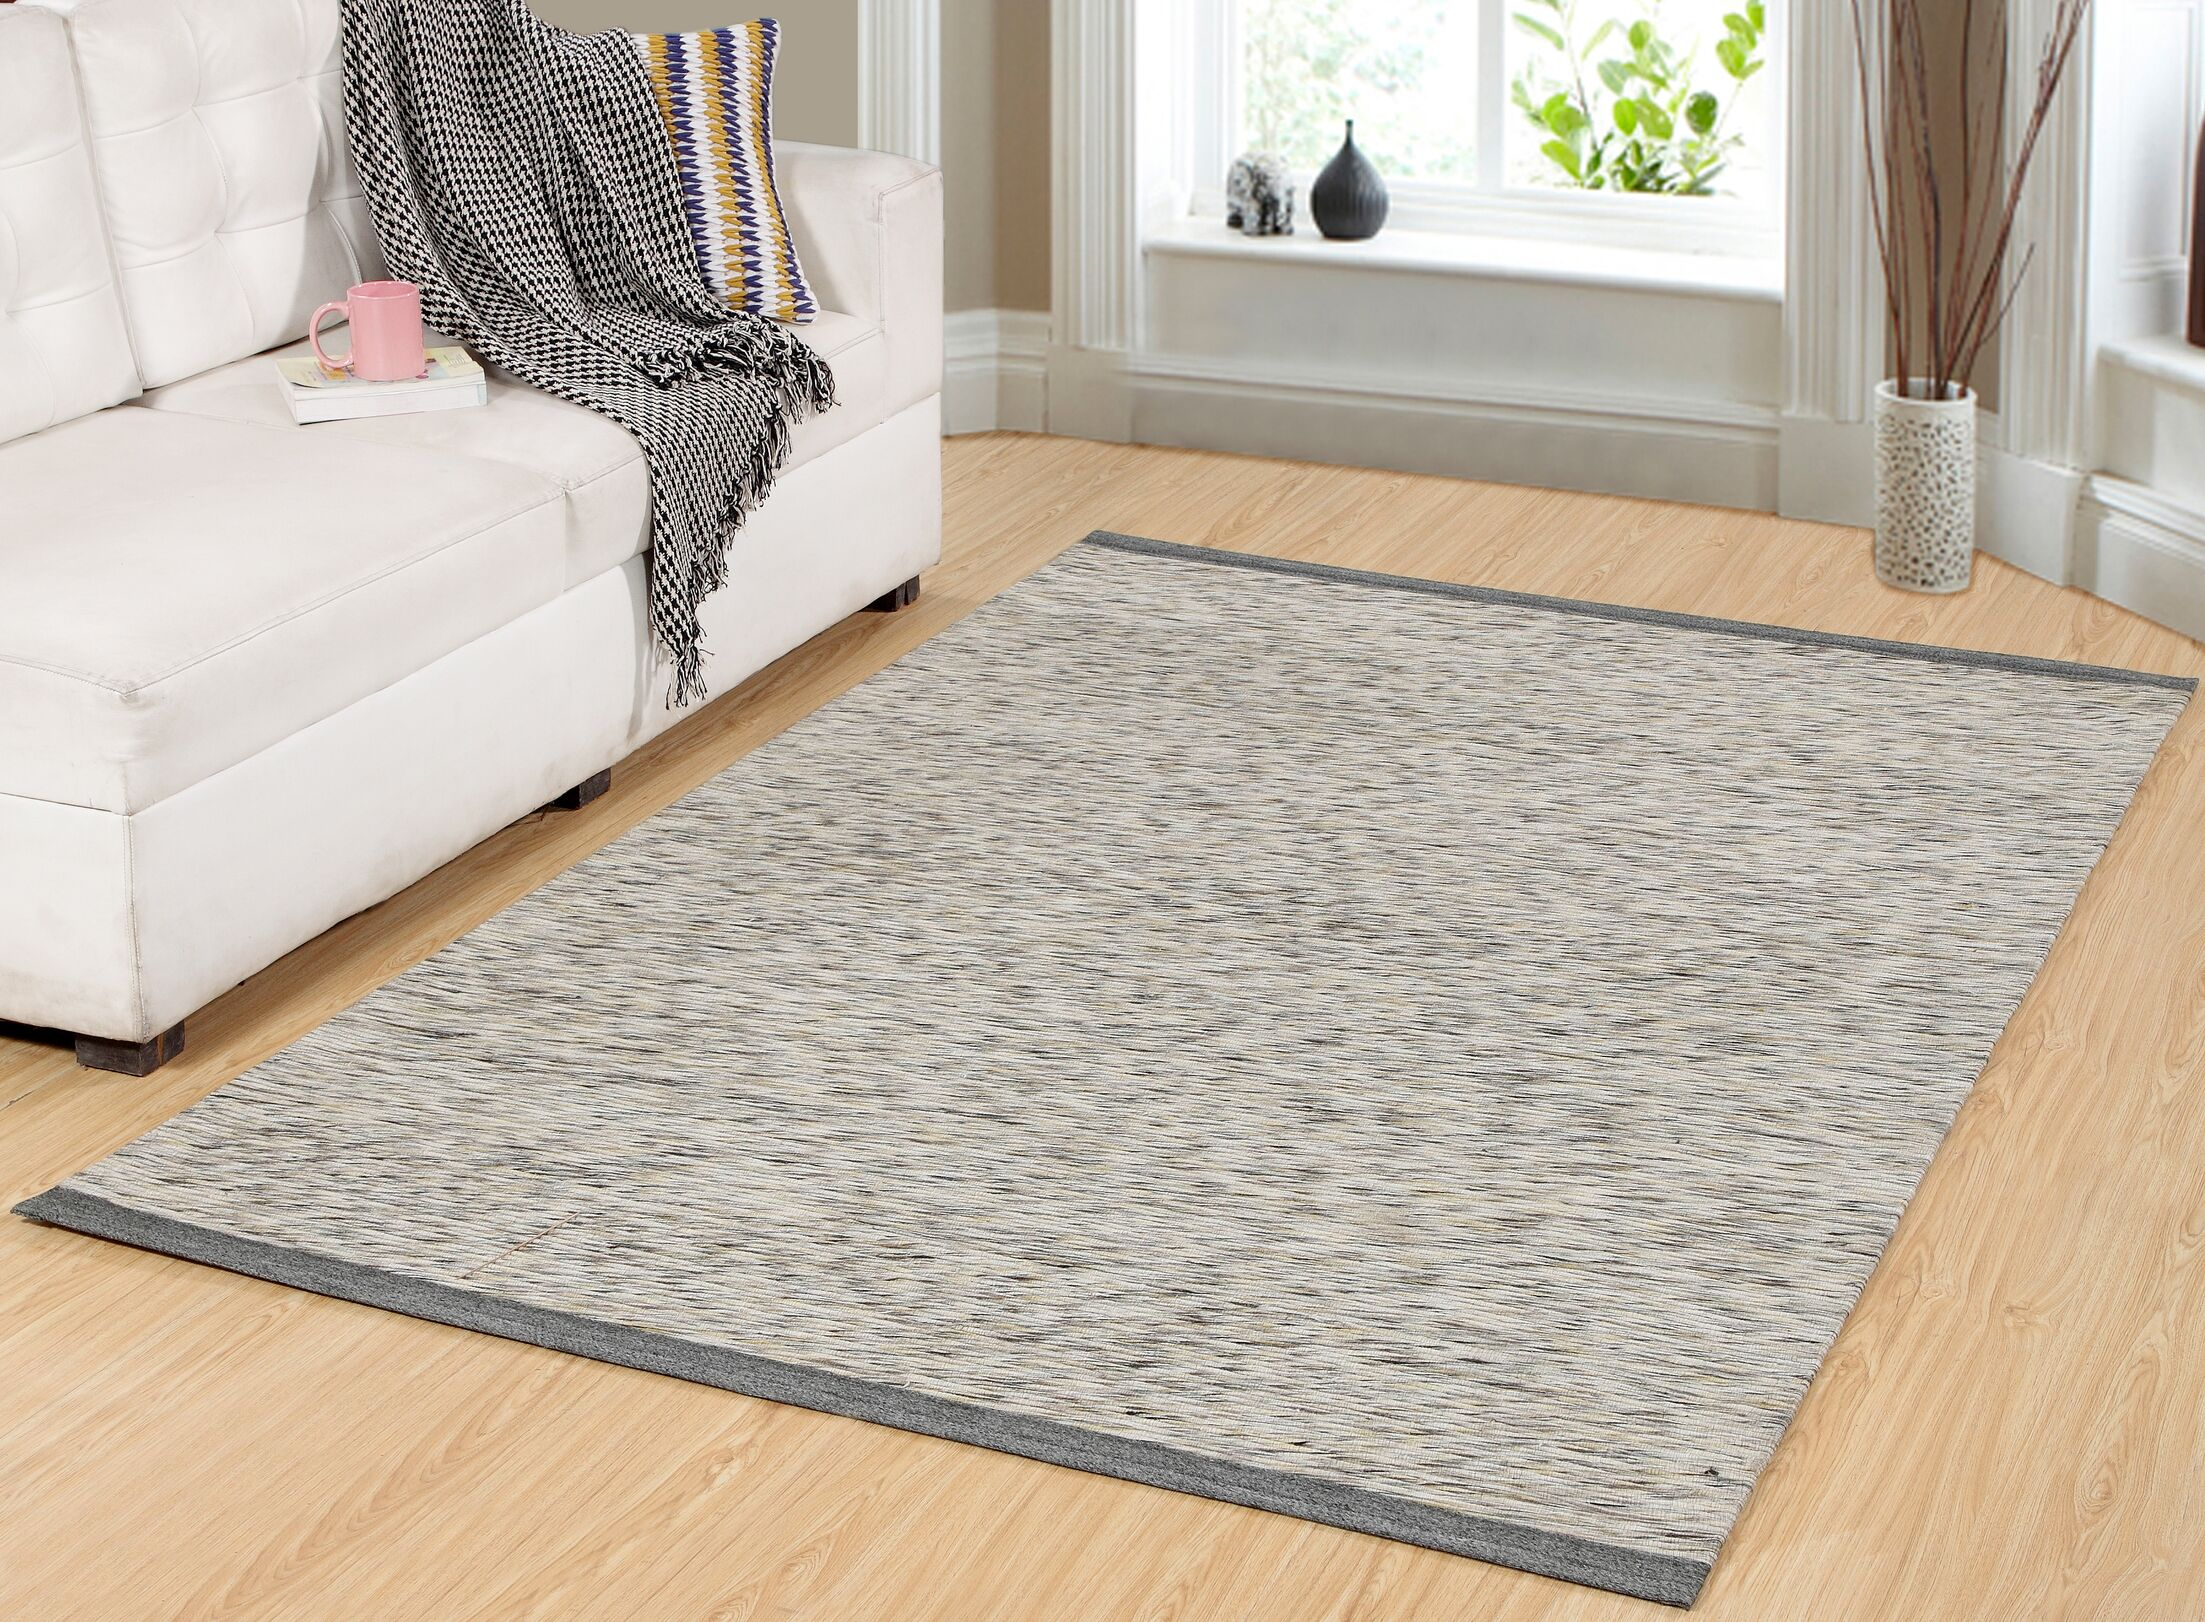 Hawtree Hand-Woven Gray/Gold Area Rug Rug Size: Rectangle 4' x 6'